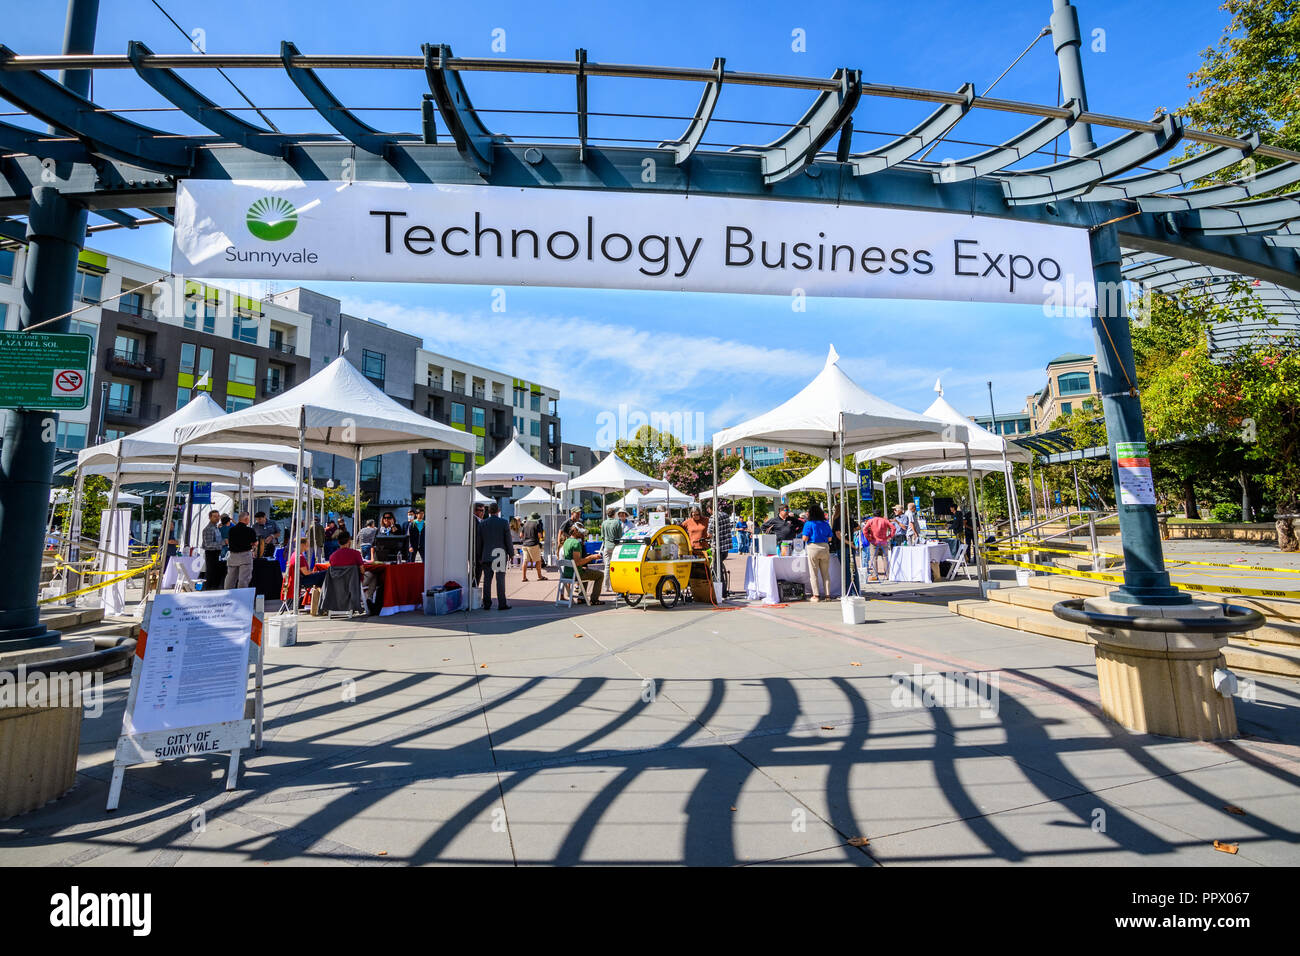 September 27, 2018 Sunnyvale / CA / USA - The 'Technology Business Expo' in the downtown area showcasing products created by local businesses - Stock Image